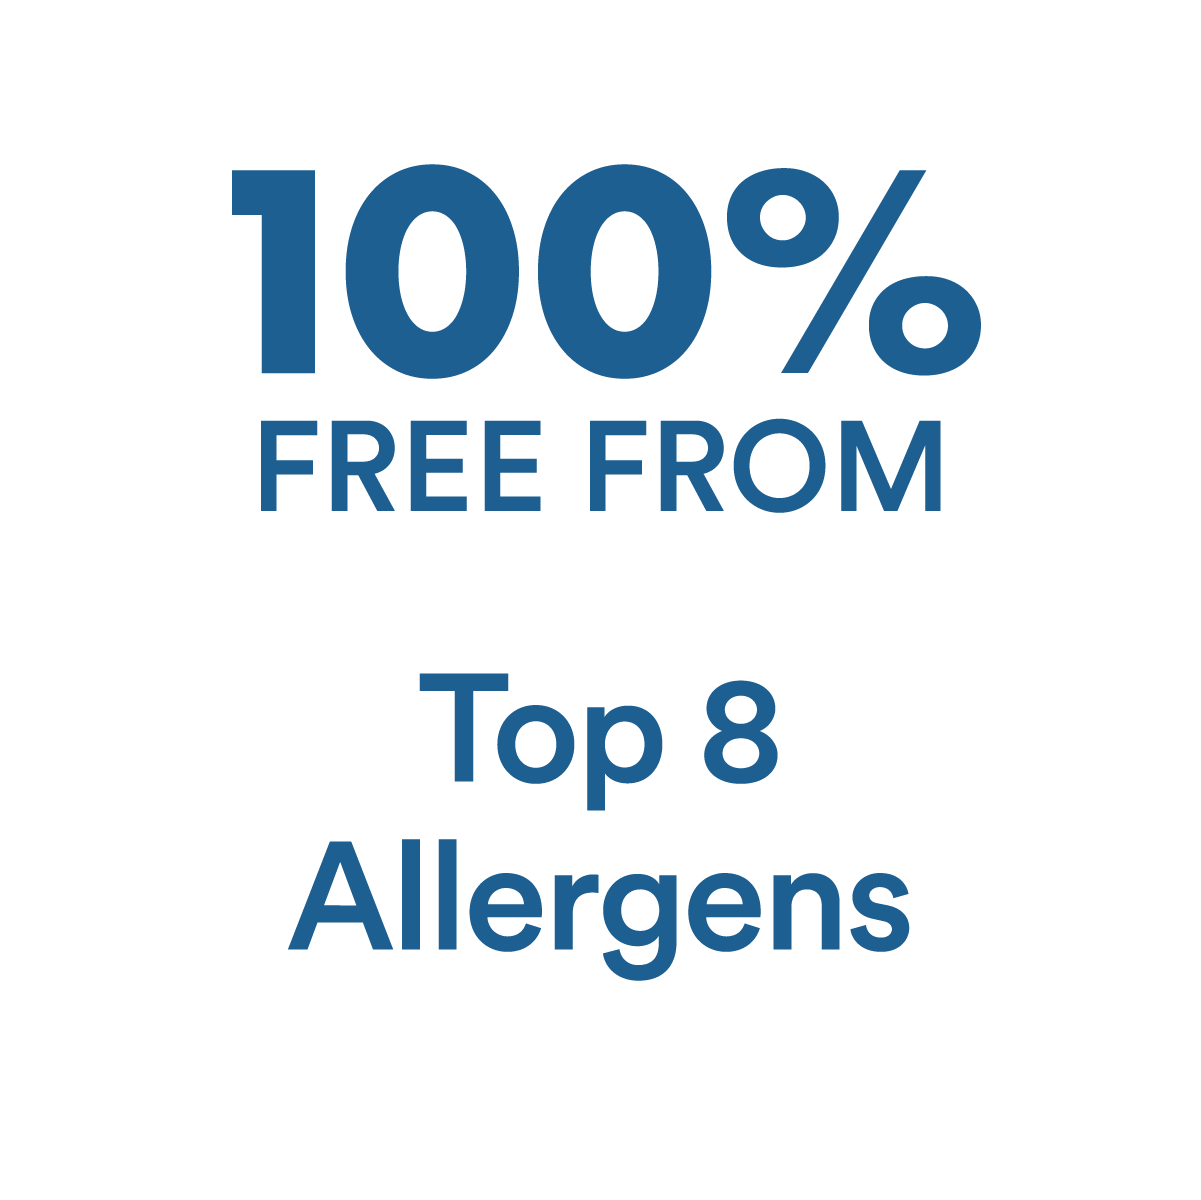 100% Free From Allergens